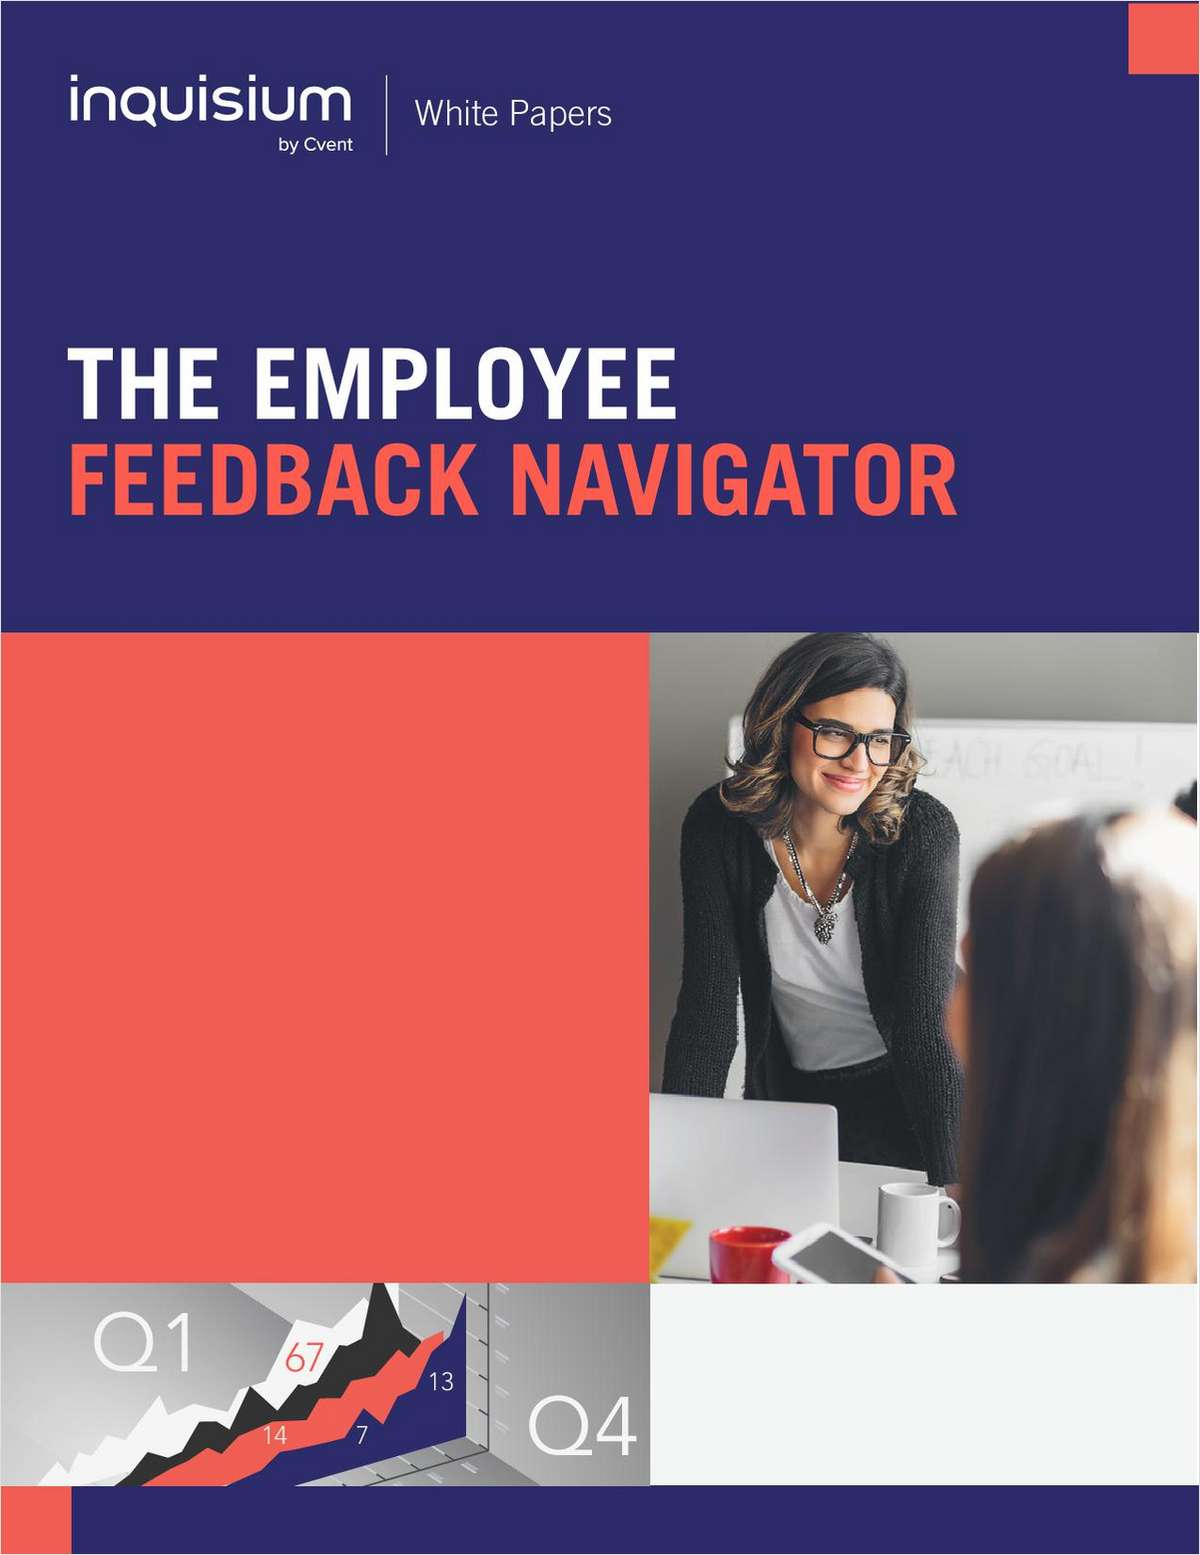 The Employee Feedback Navigator